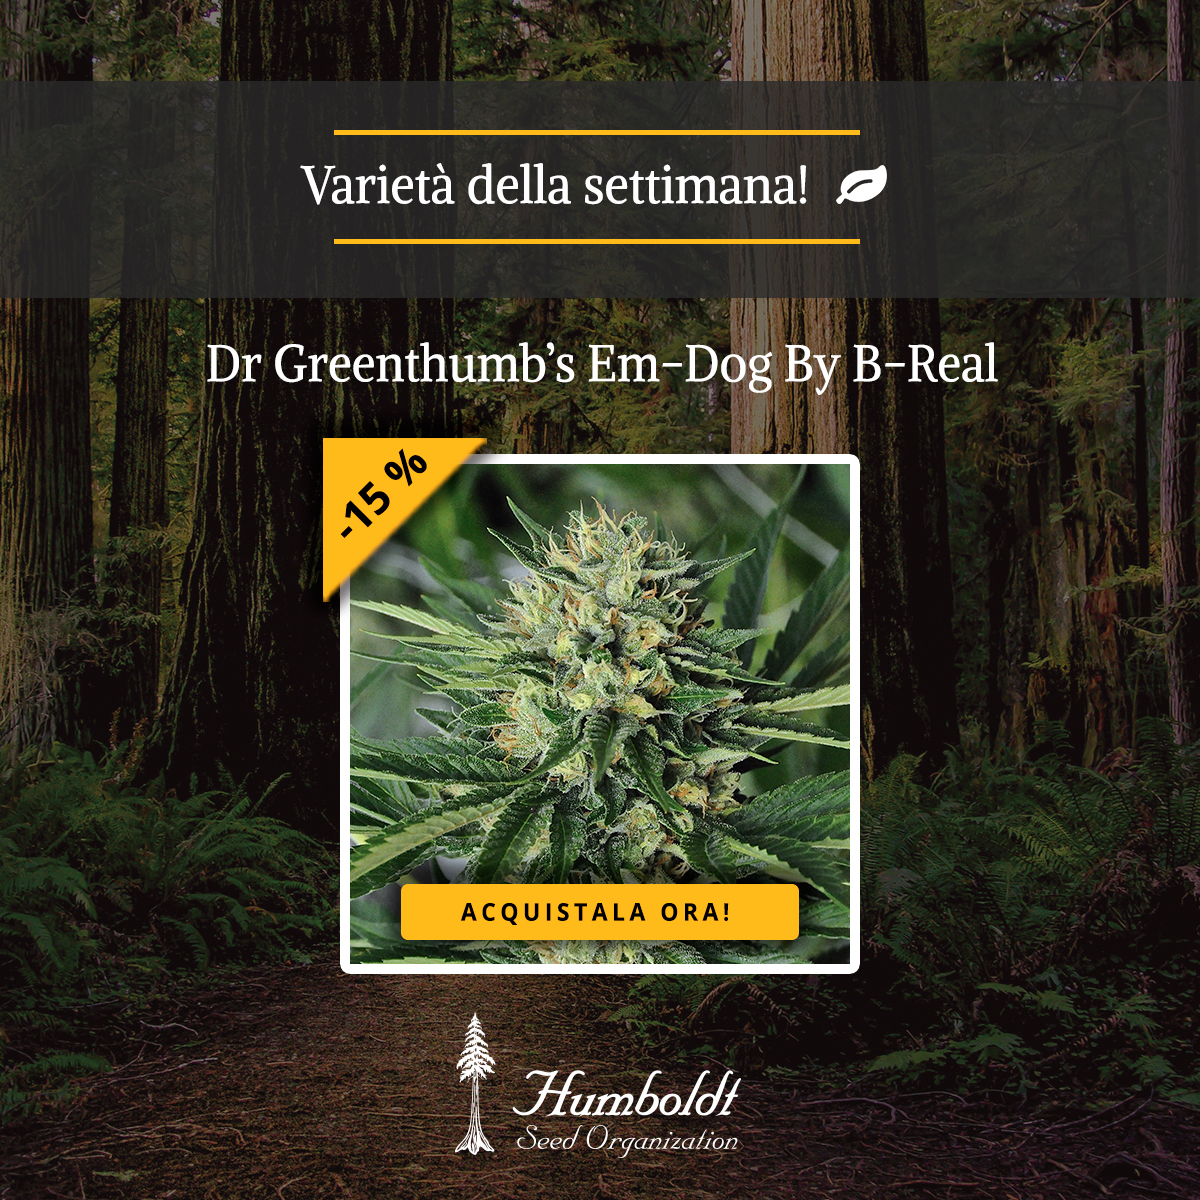 Dr Greenthumb's Em-Dog By B-Real